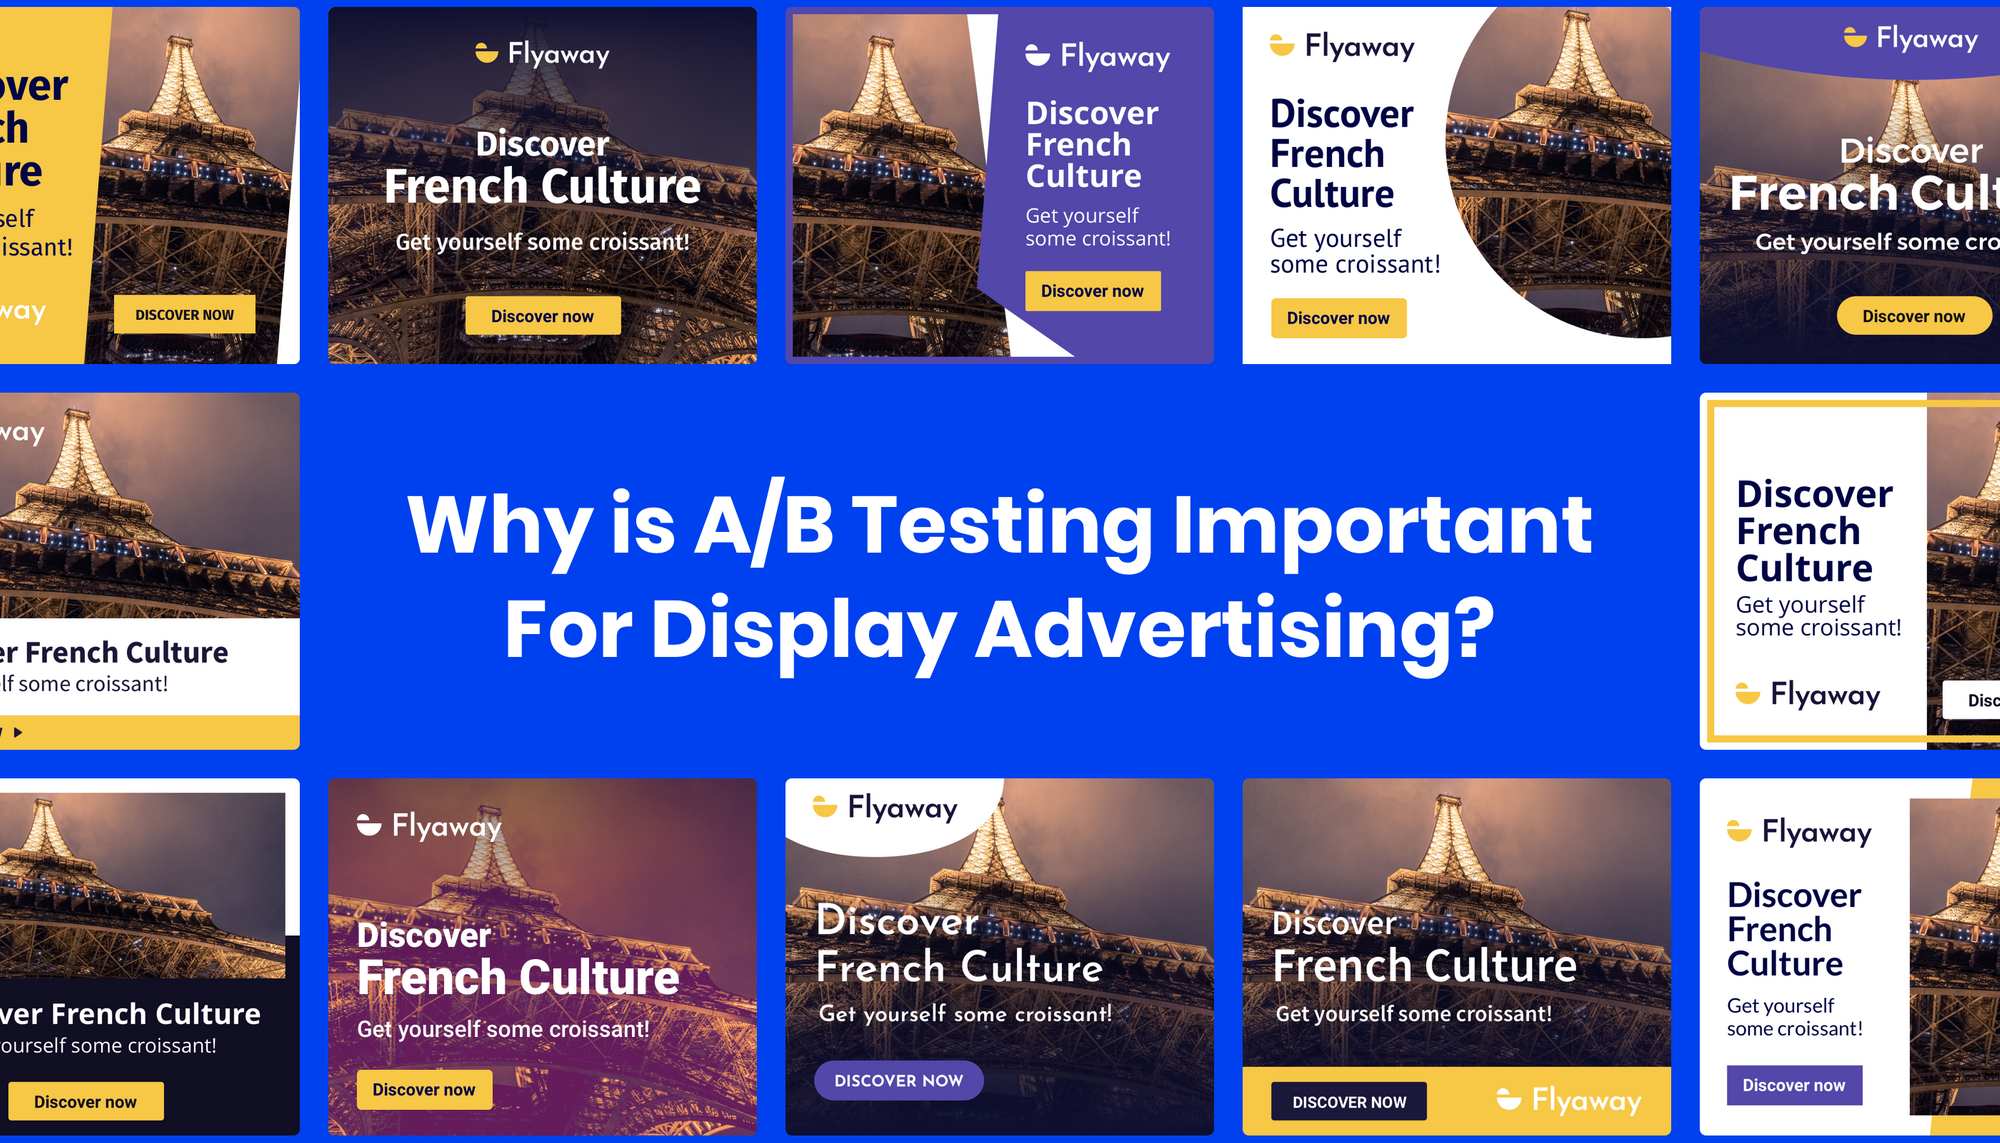 Why is A/B Testing Important For Display Advertising?